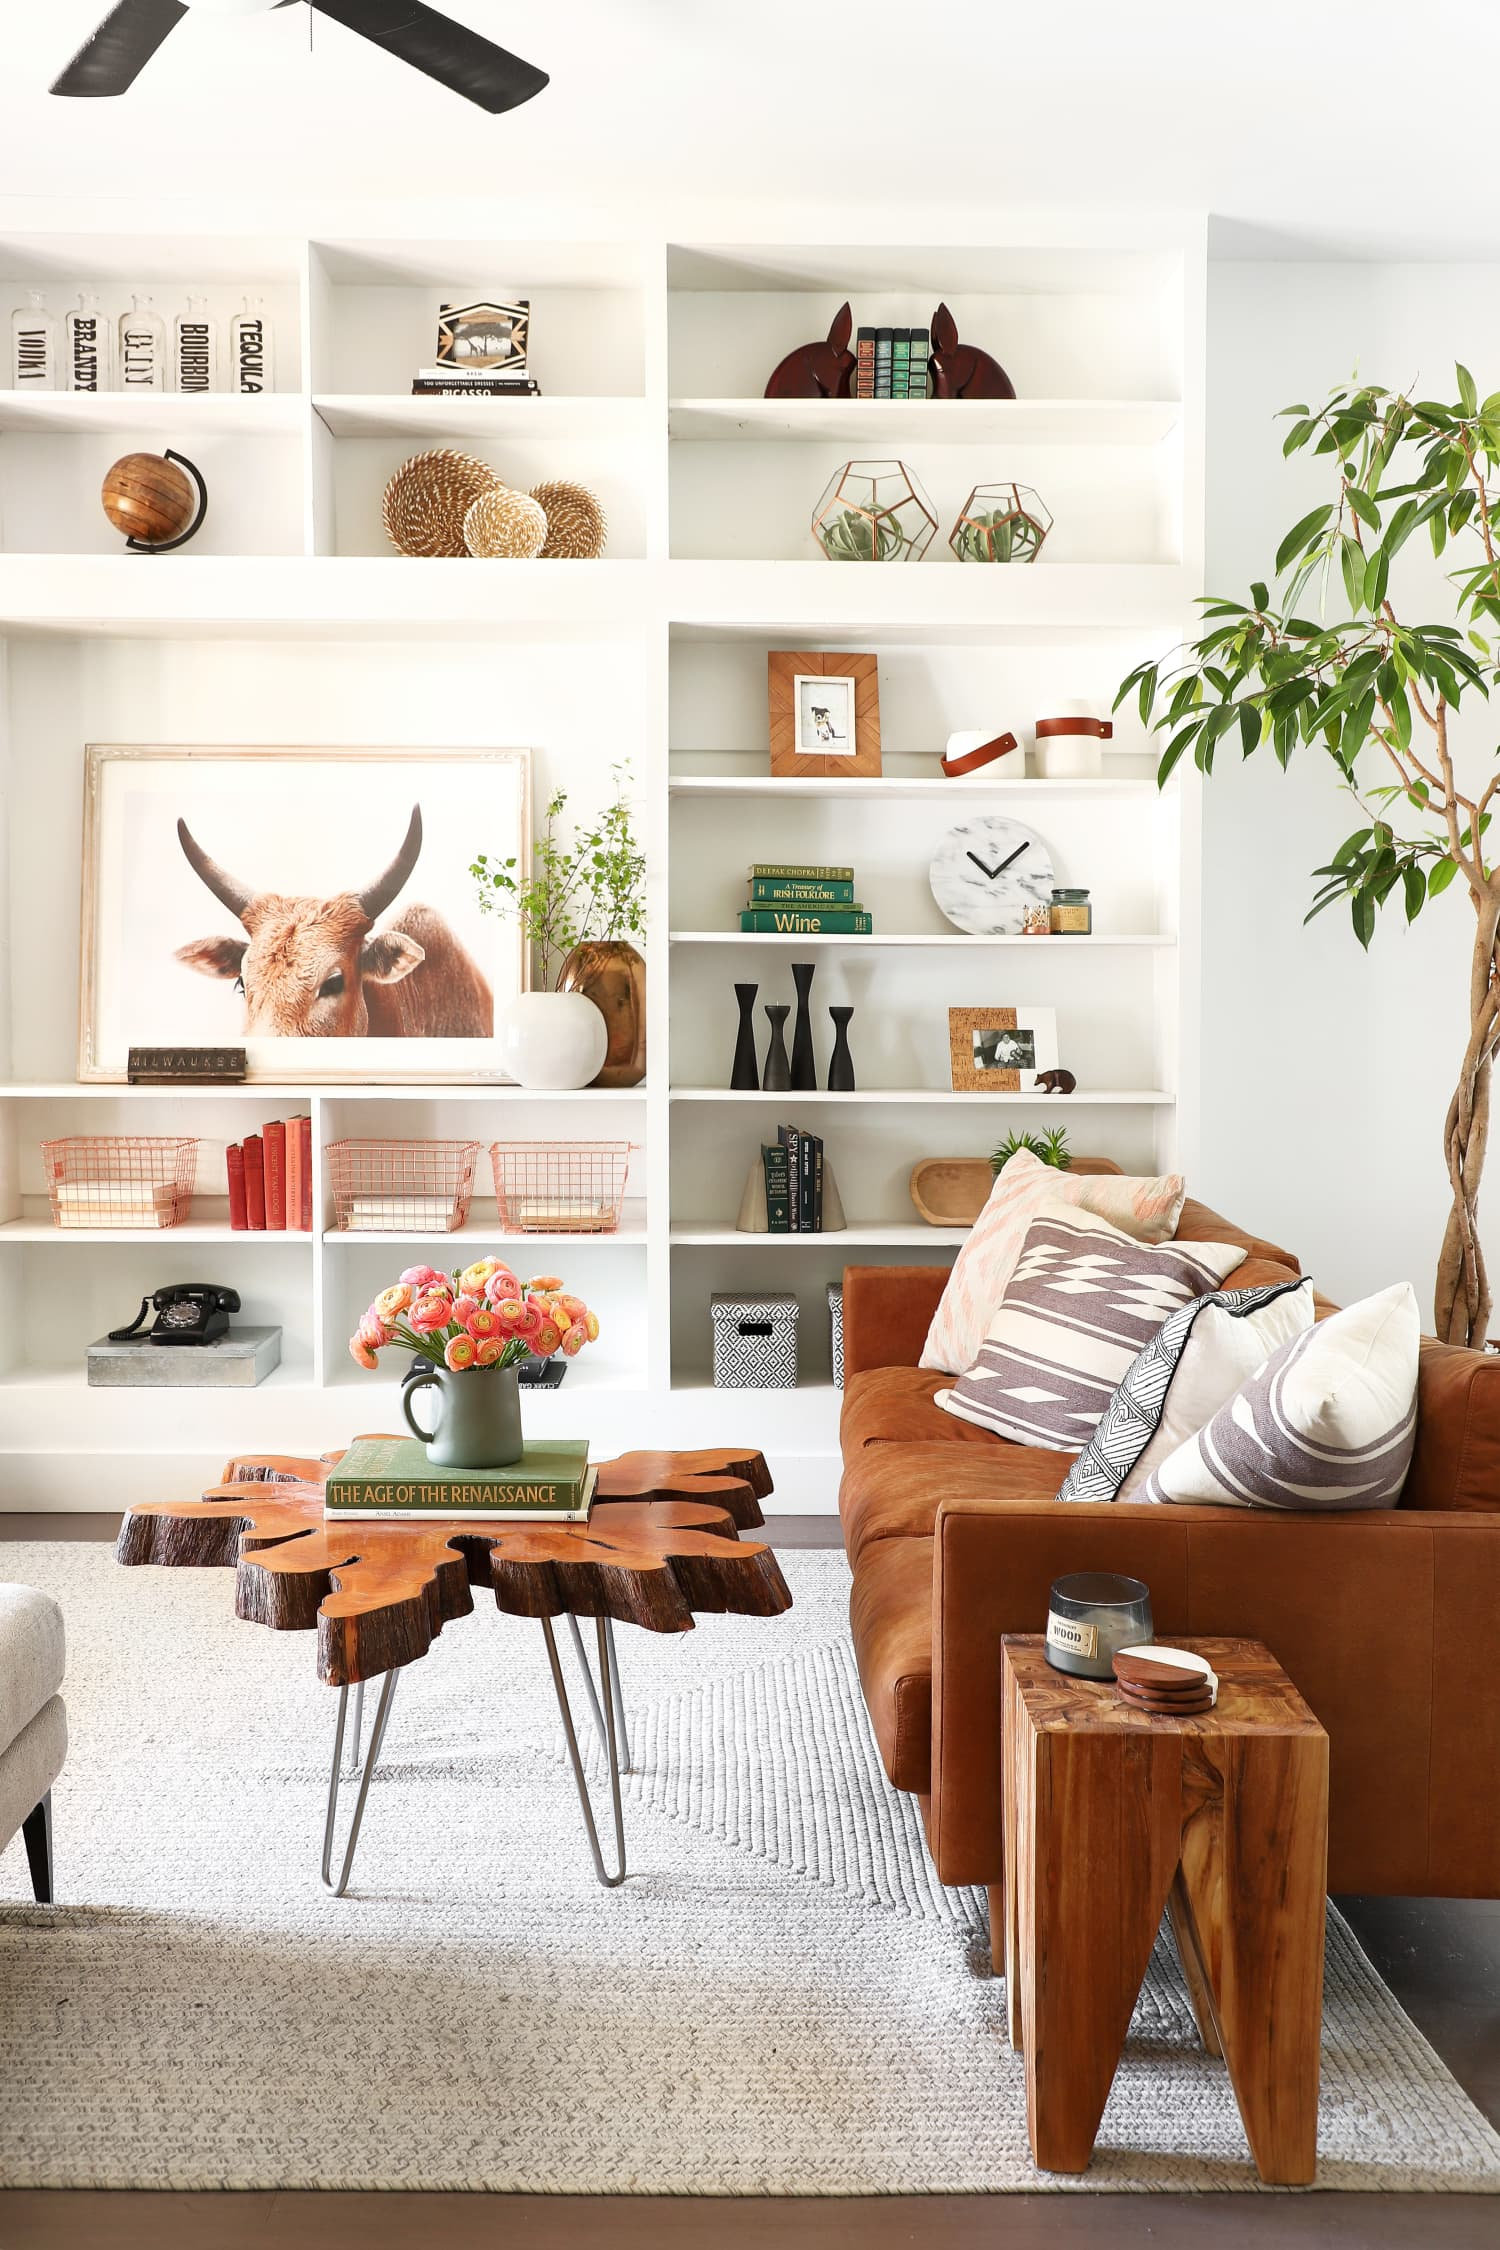 10 Small Truths That Will Help You Declutter Your Home